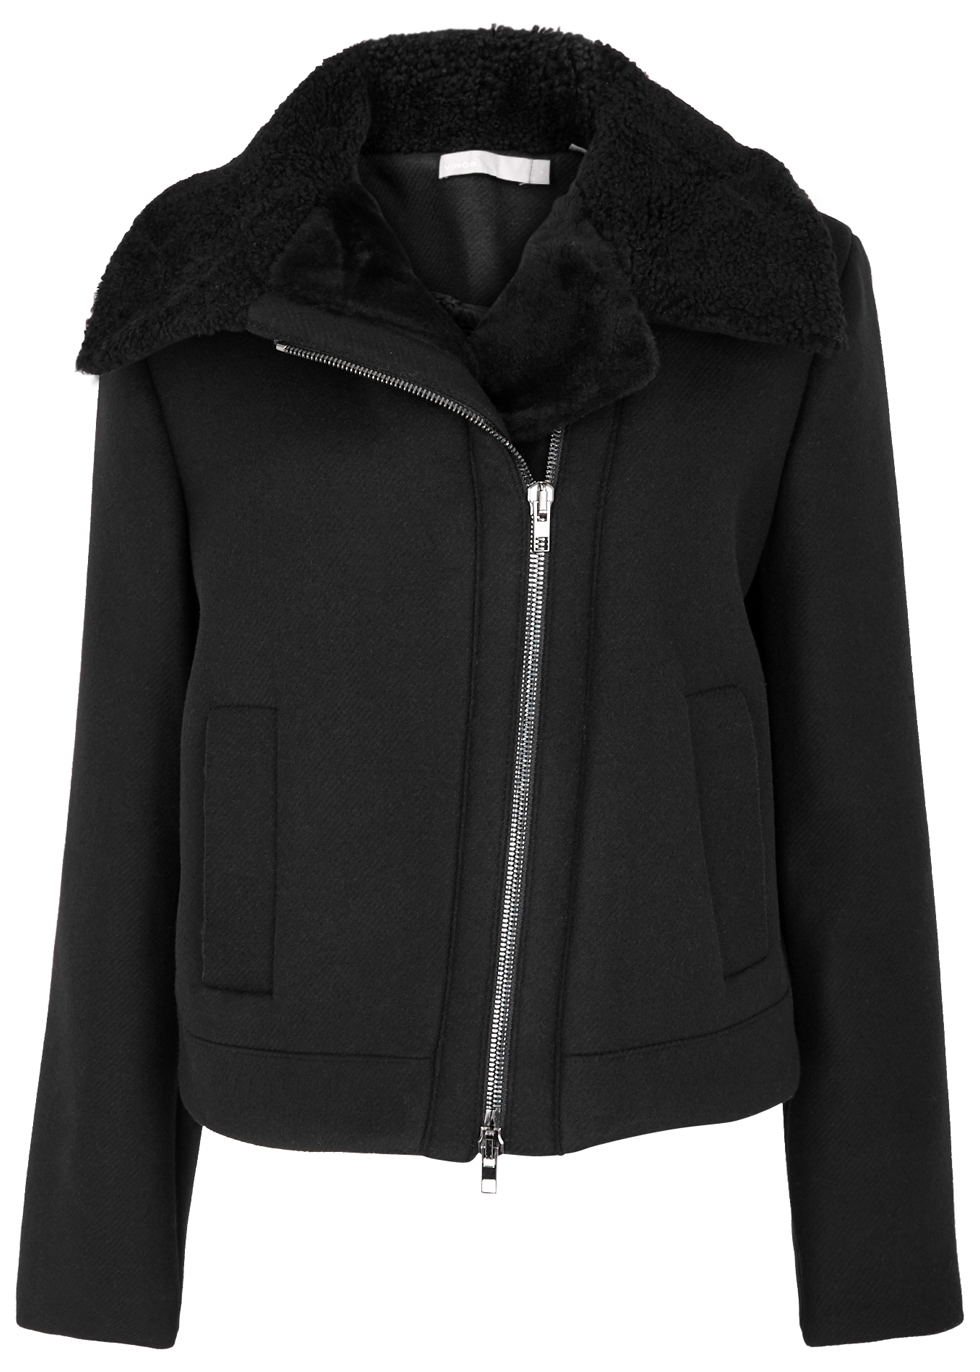 Moto Black Shearling Trimmed Jacket - pattern: plain; style: biker; collar: asymmetric biker; predominant colour: black; occasions: casual, creative work; length: standard; fit: straight cut (boxy); fibres: wool - mix; sleeve length: long sleeve; sleeve style: standard; collar break: medium; pattern type: fabric; texture group: woven light midweight; embellishment: fur; season: a/w 2016; wardrobe: highlight; embellishment location: neck